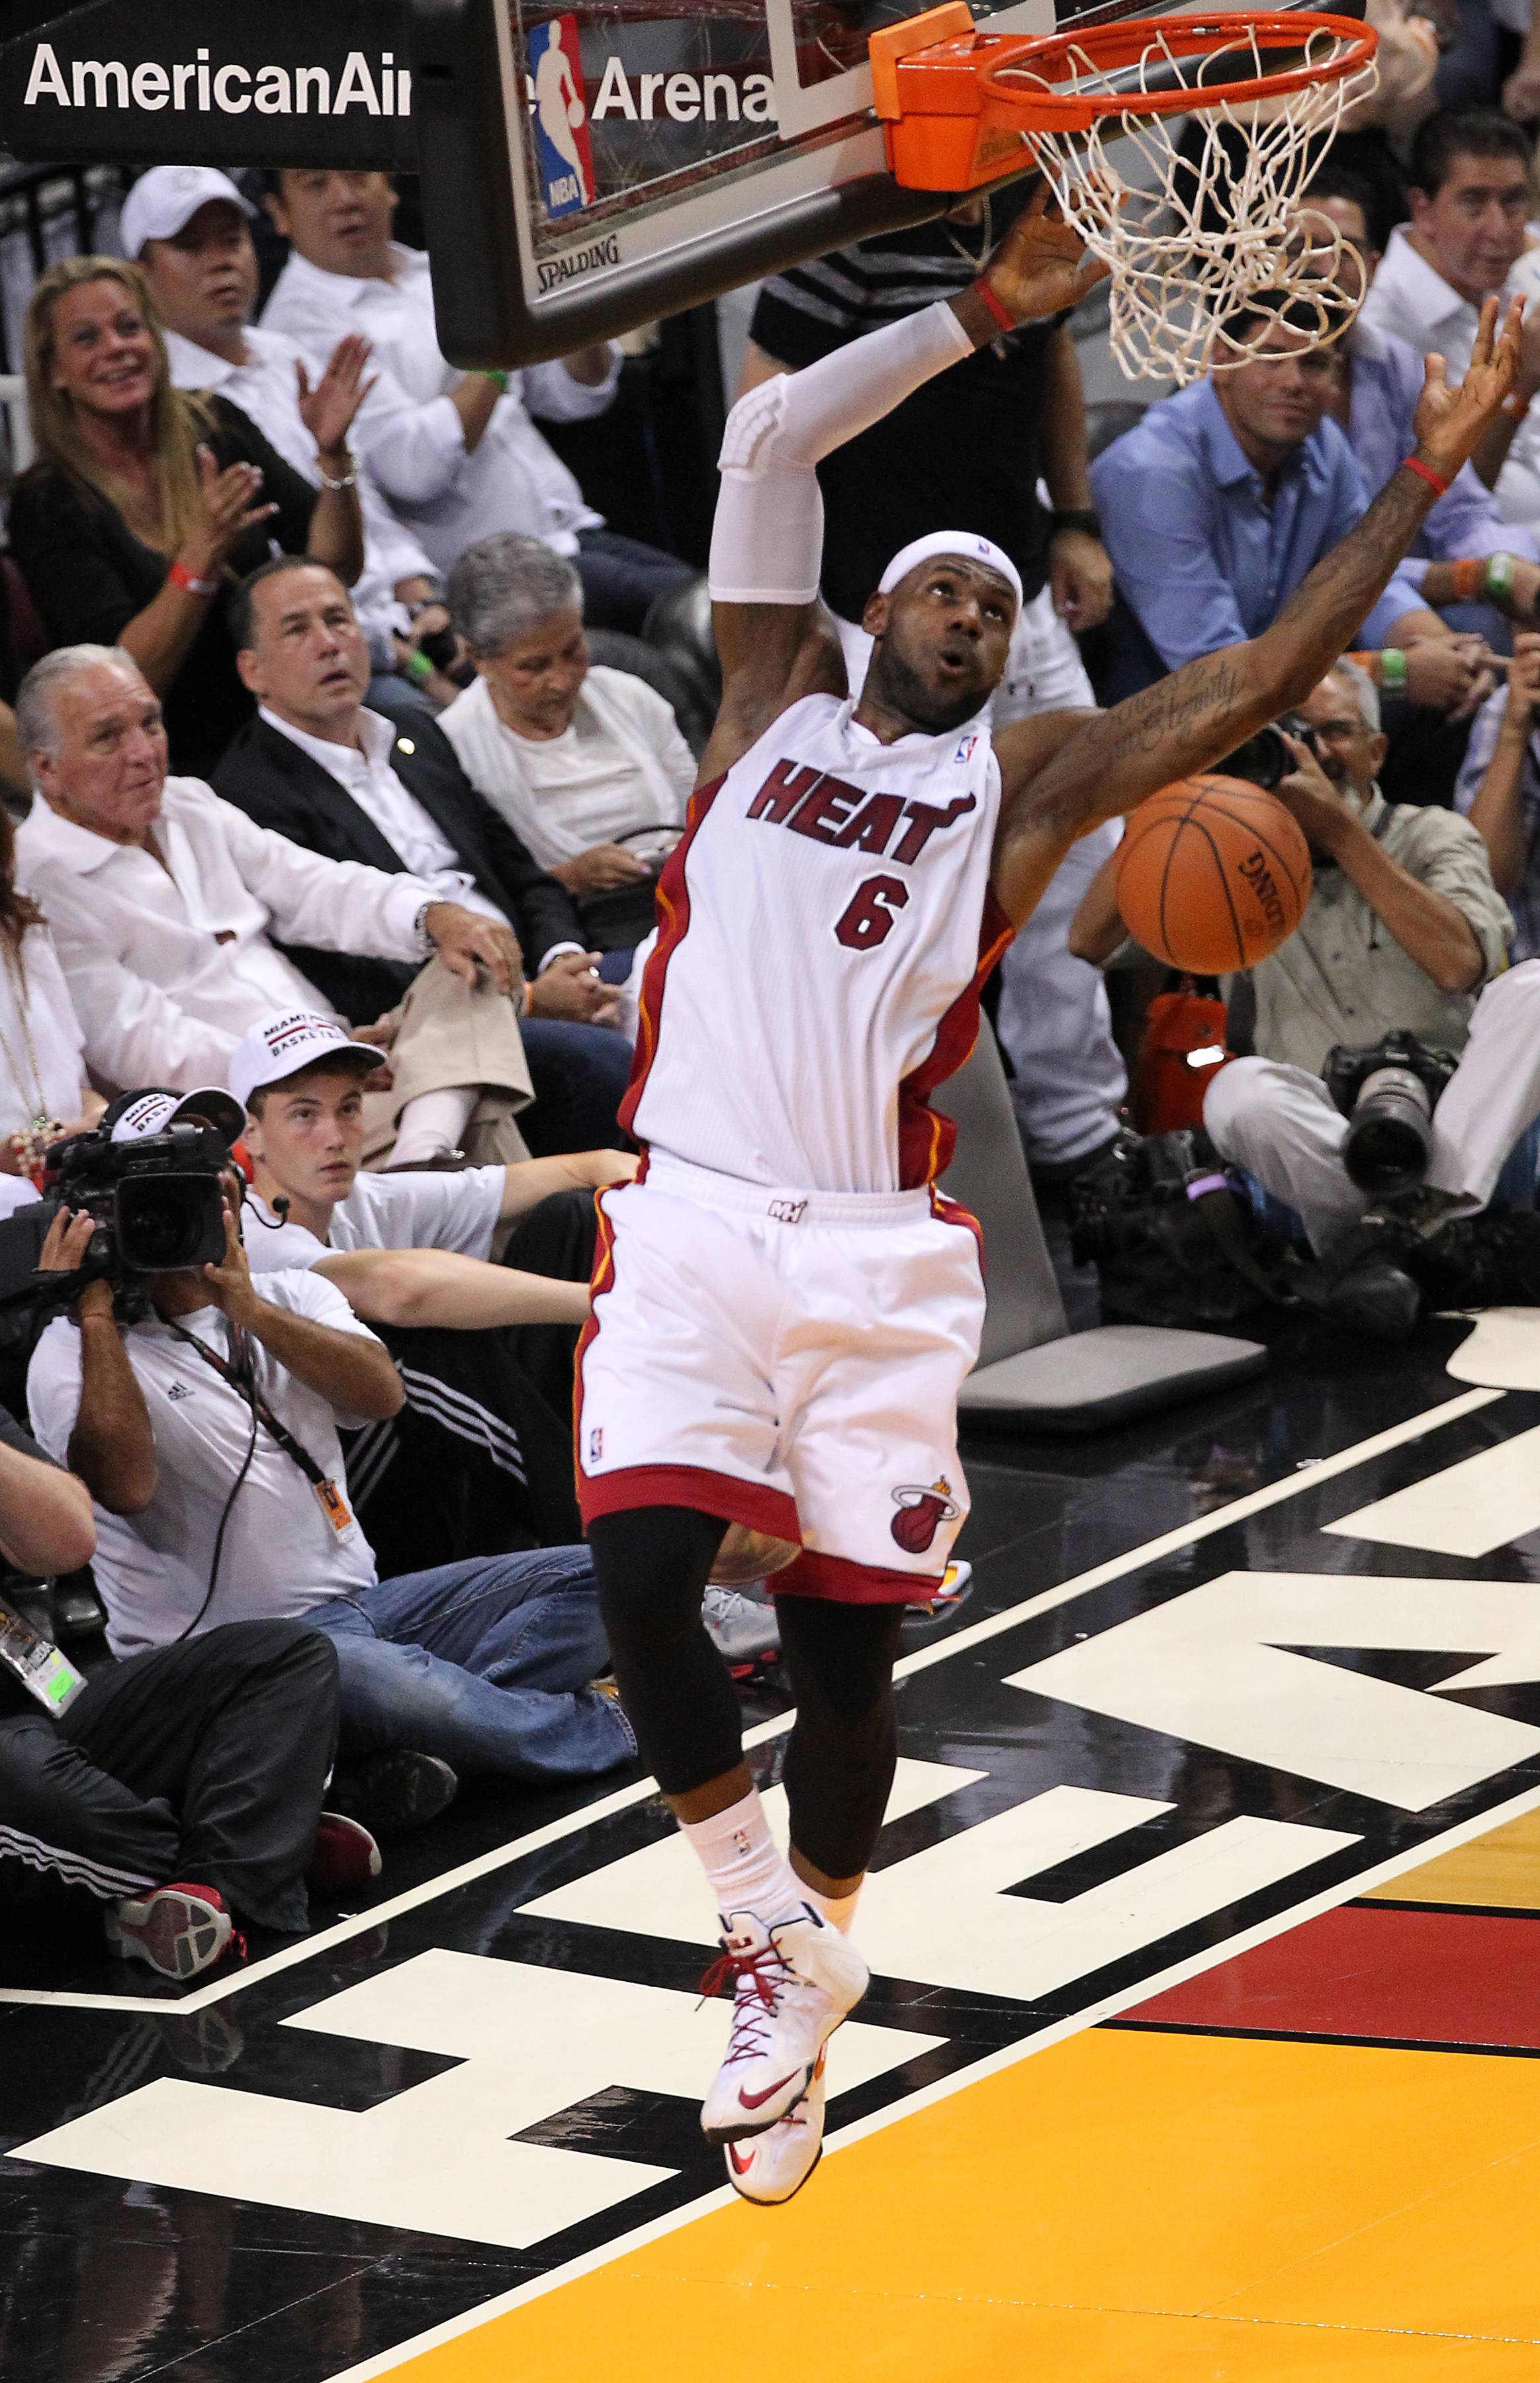 Miami Heat forward LeBron James dunks during the first quarter of Game 2 of the NBA Eastern Conference semifinal basketball game against the Brooklyn Nets at the AmericanAirlines Arena in Miami on Thursday, May 8, 2014. (AP Photo/El Nuevo Herald, David Santiago) MAGS OUT